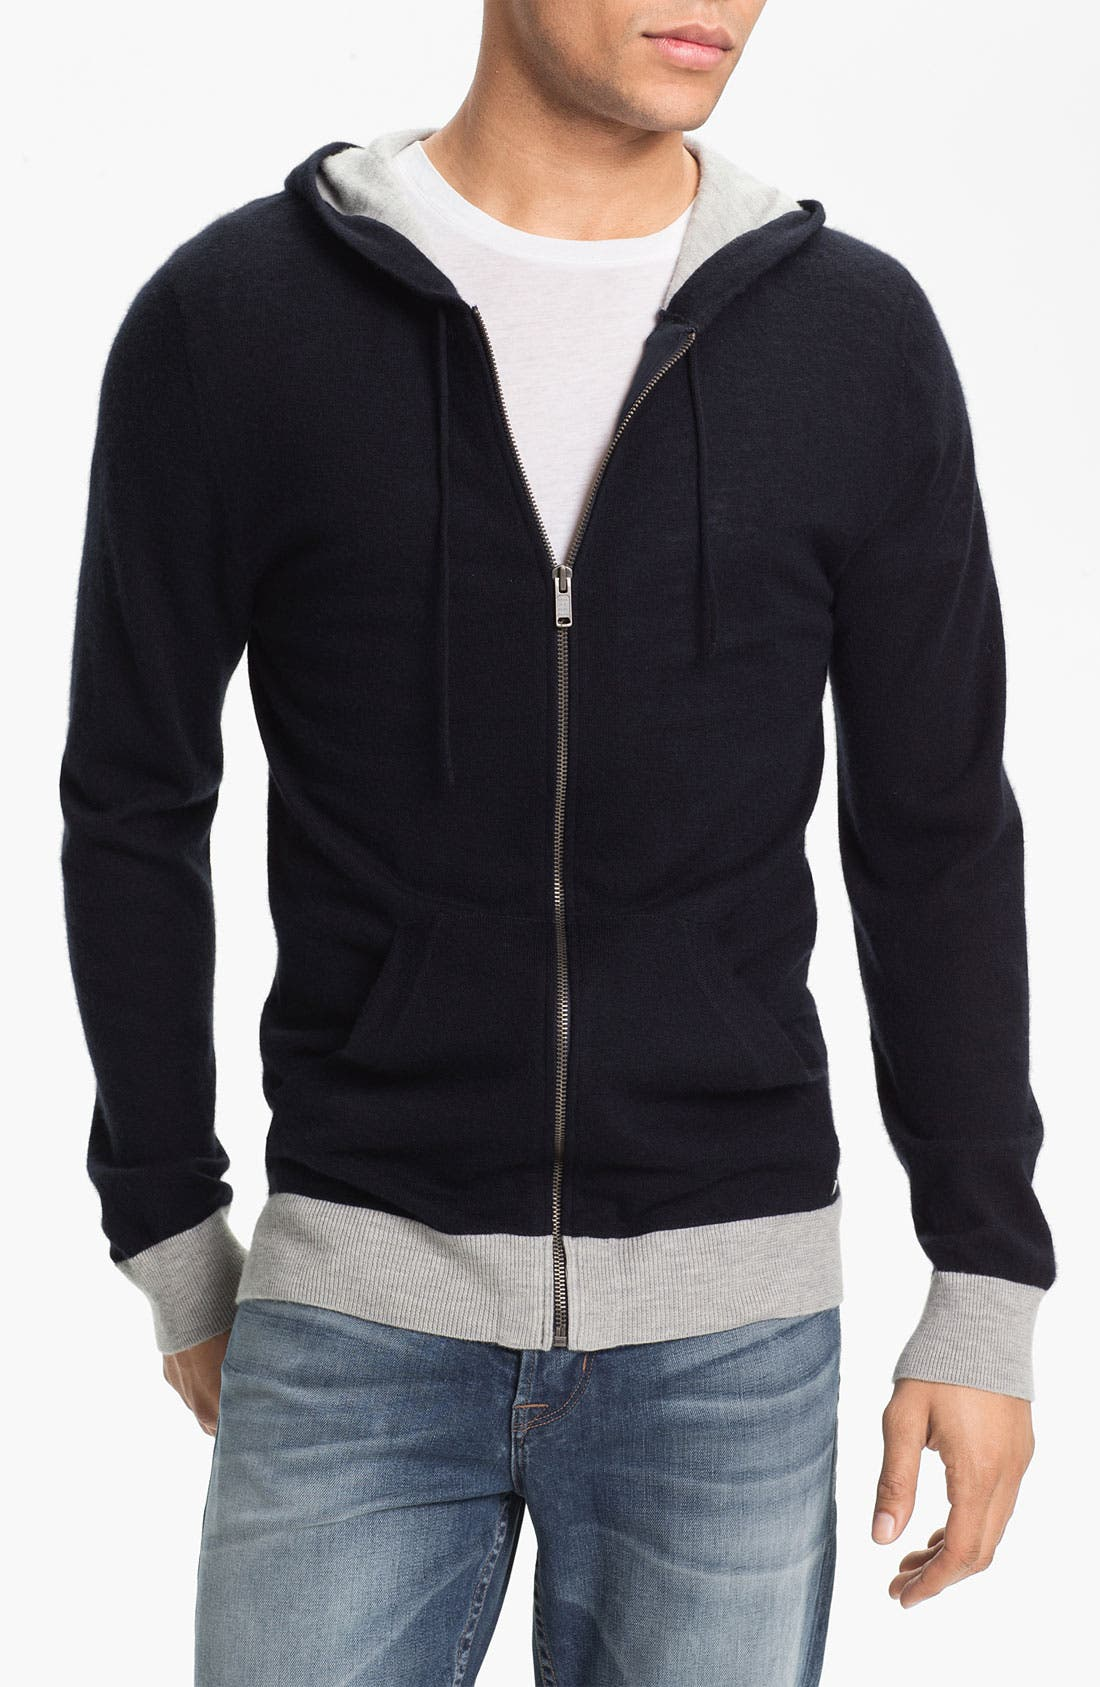 Alternate Image 1 Selected - MARC BY MARC JACOBS 'Kilmer' Cashmere Knit Hoodie